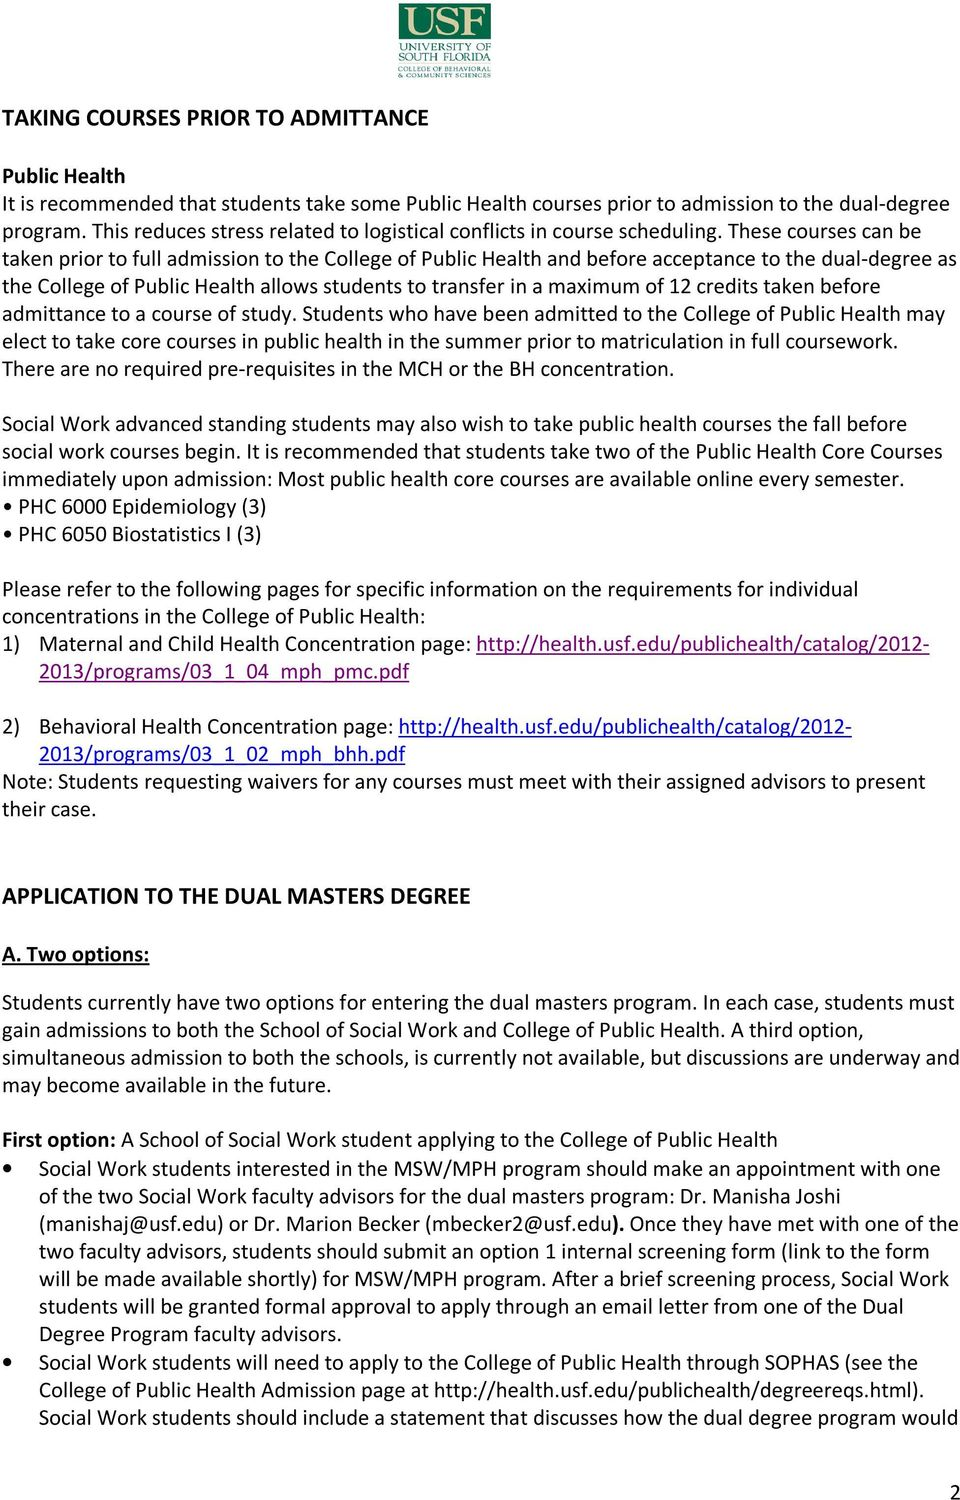 These courses can be taken prior to full admission to the College of Public Health and before acceptance to the dual-degree as the College of Public Health allows students to transfer in a maximum of